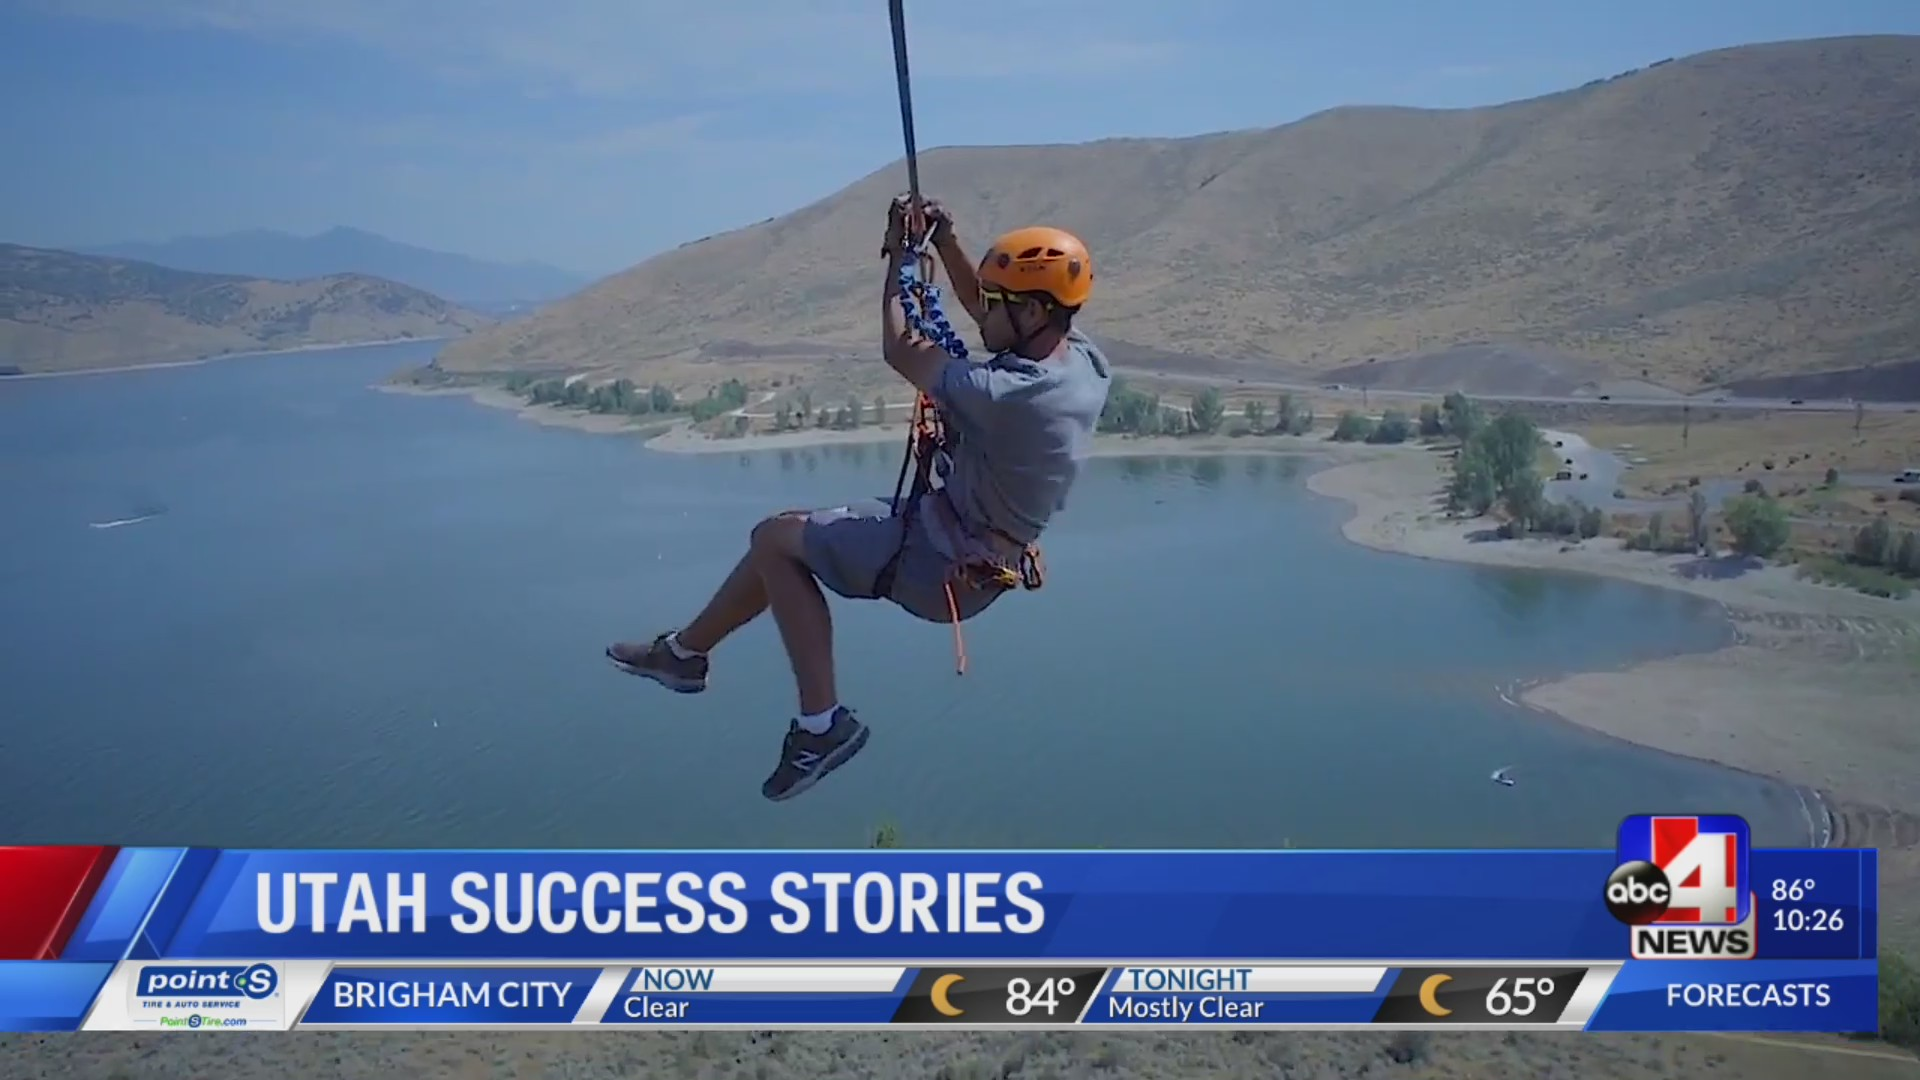 Utah Success Stories | ABC 4